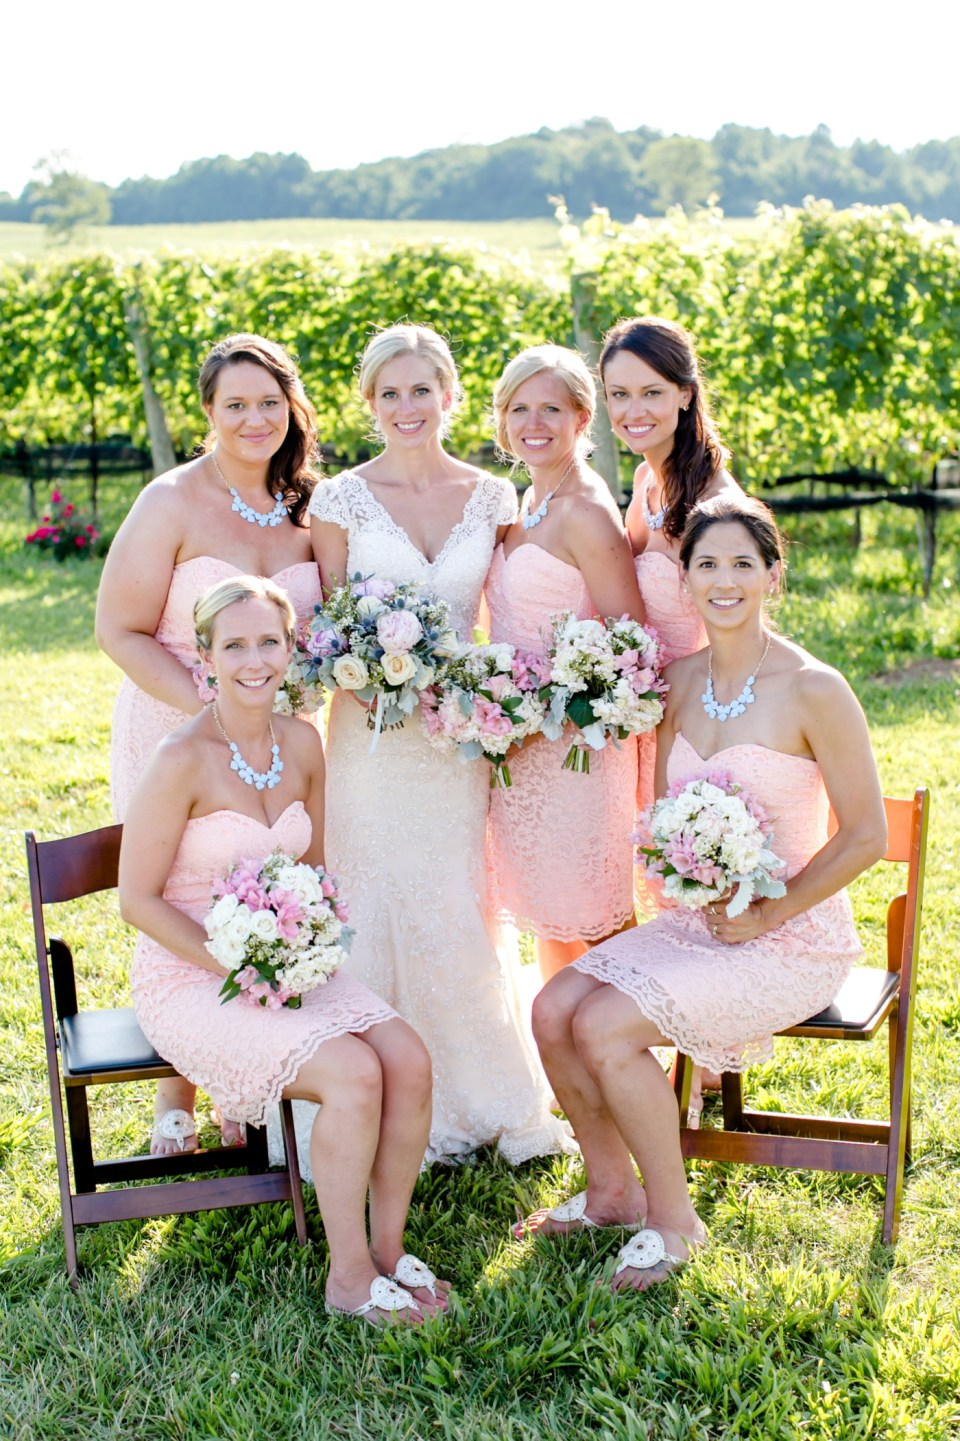 38A-Stone-Tower-Winery-Summer-Wedding-GG-1144